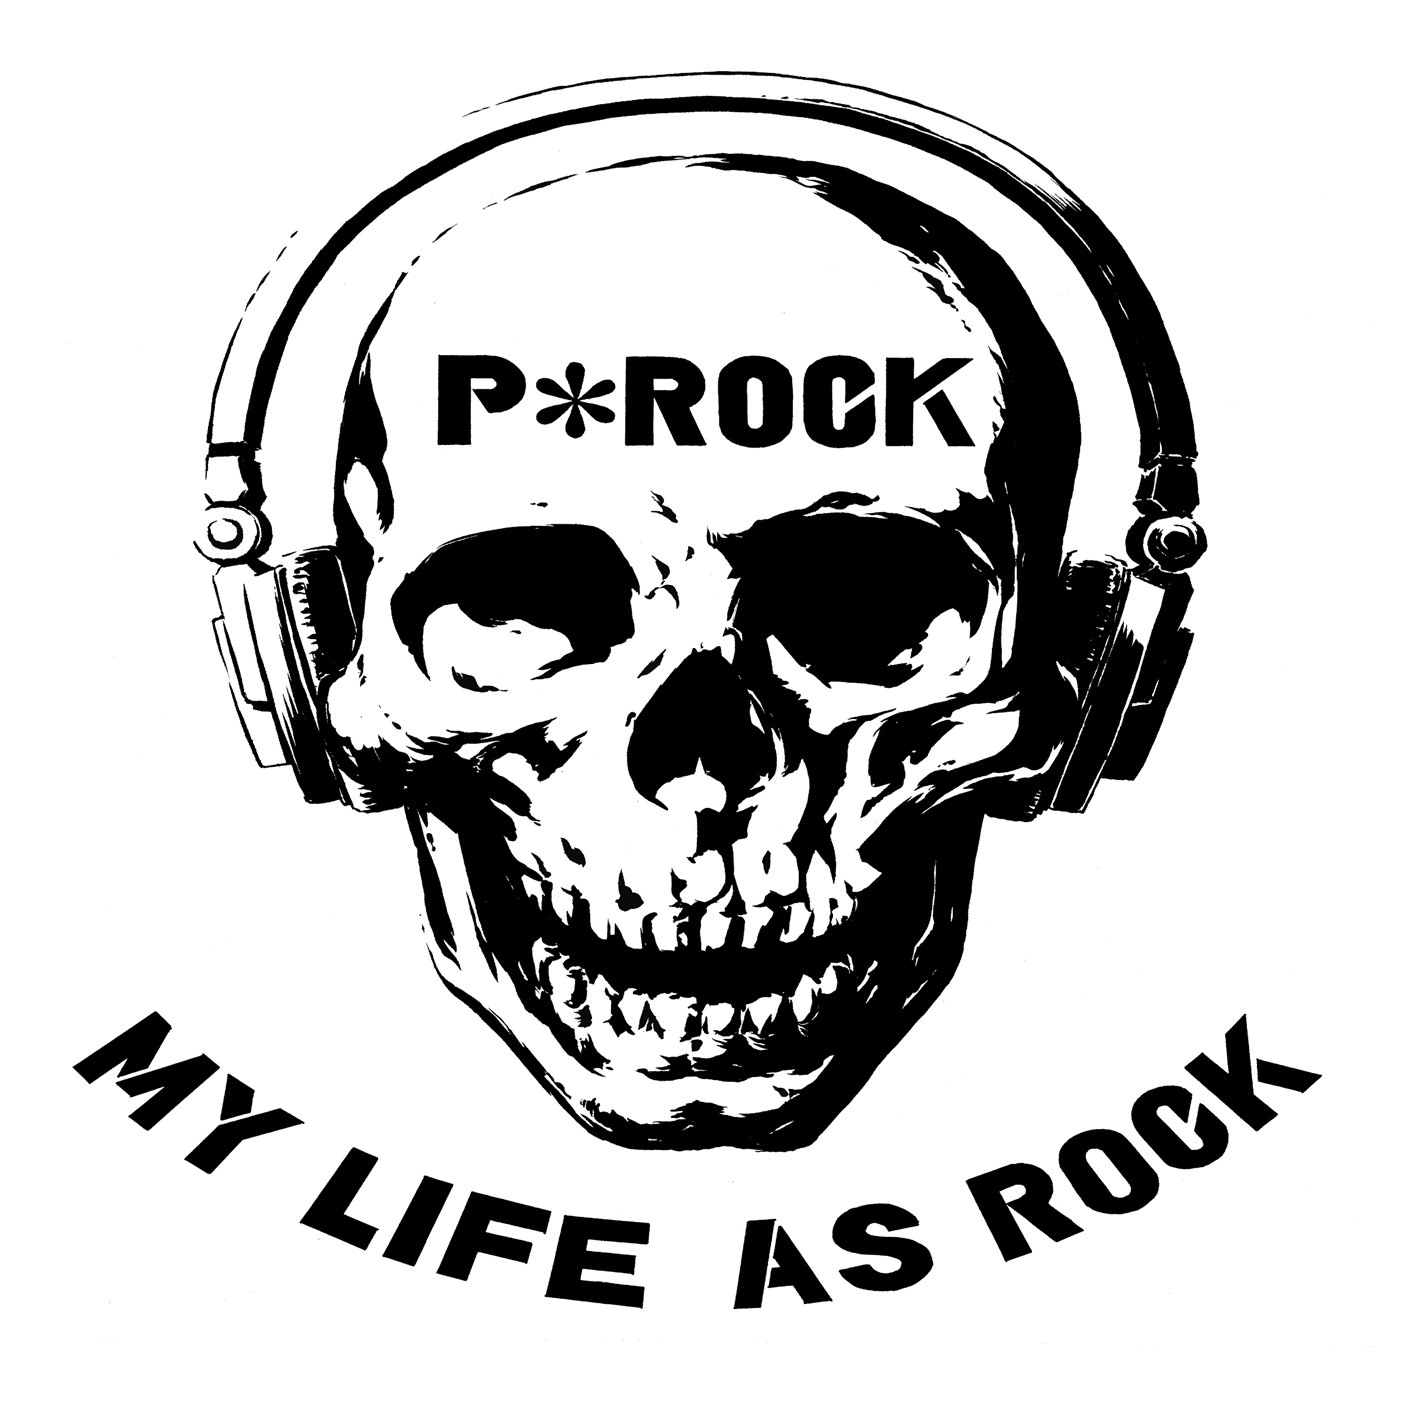 MY LIFE AS ROCK